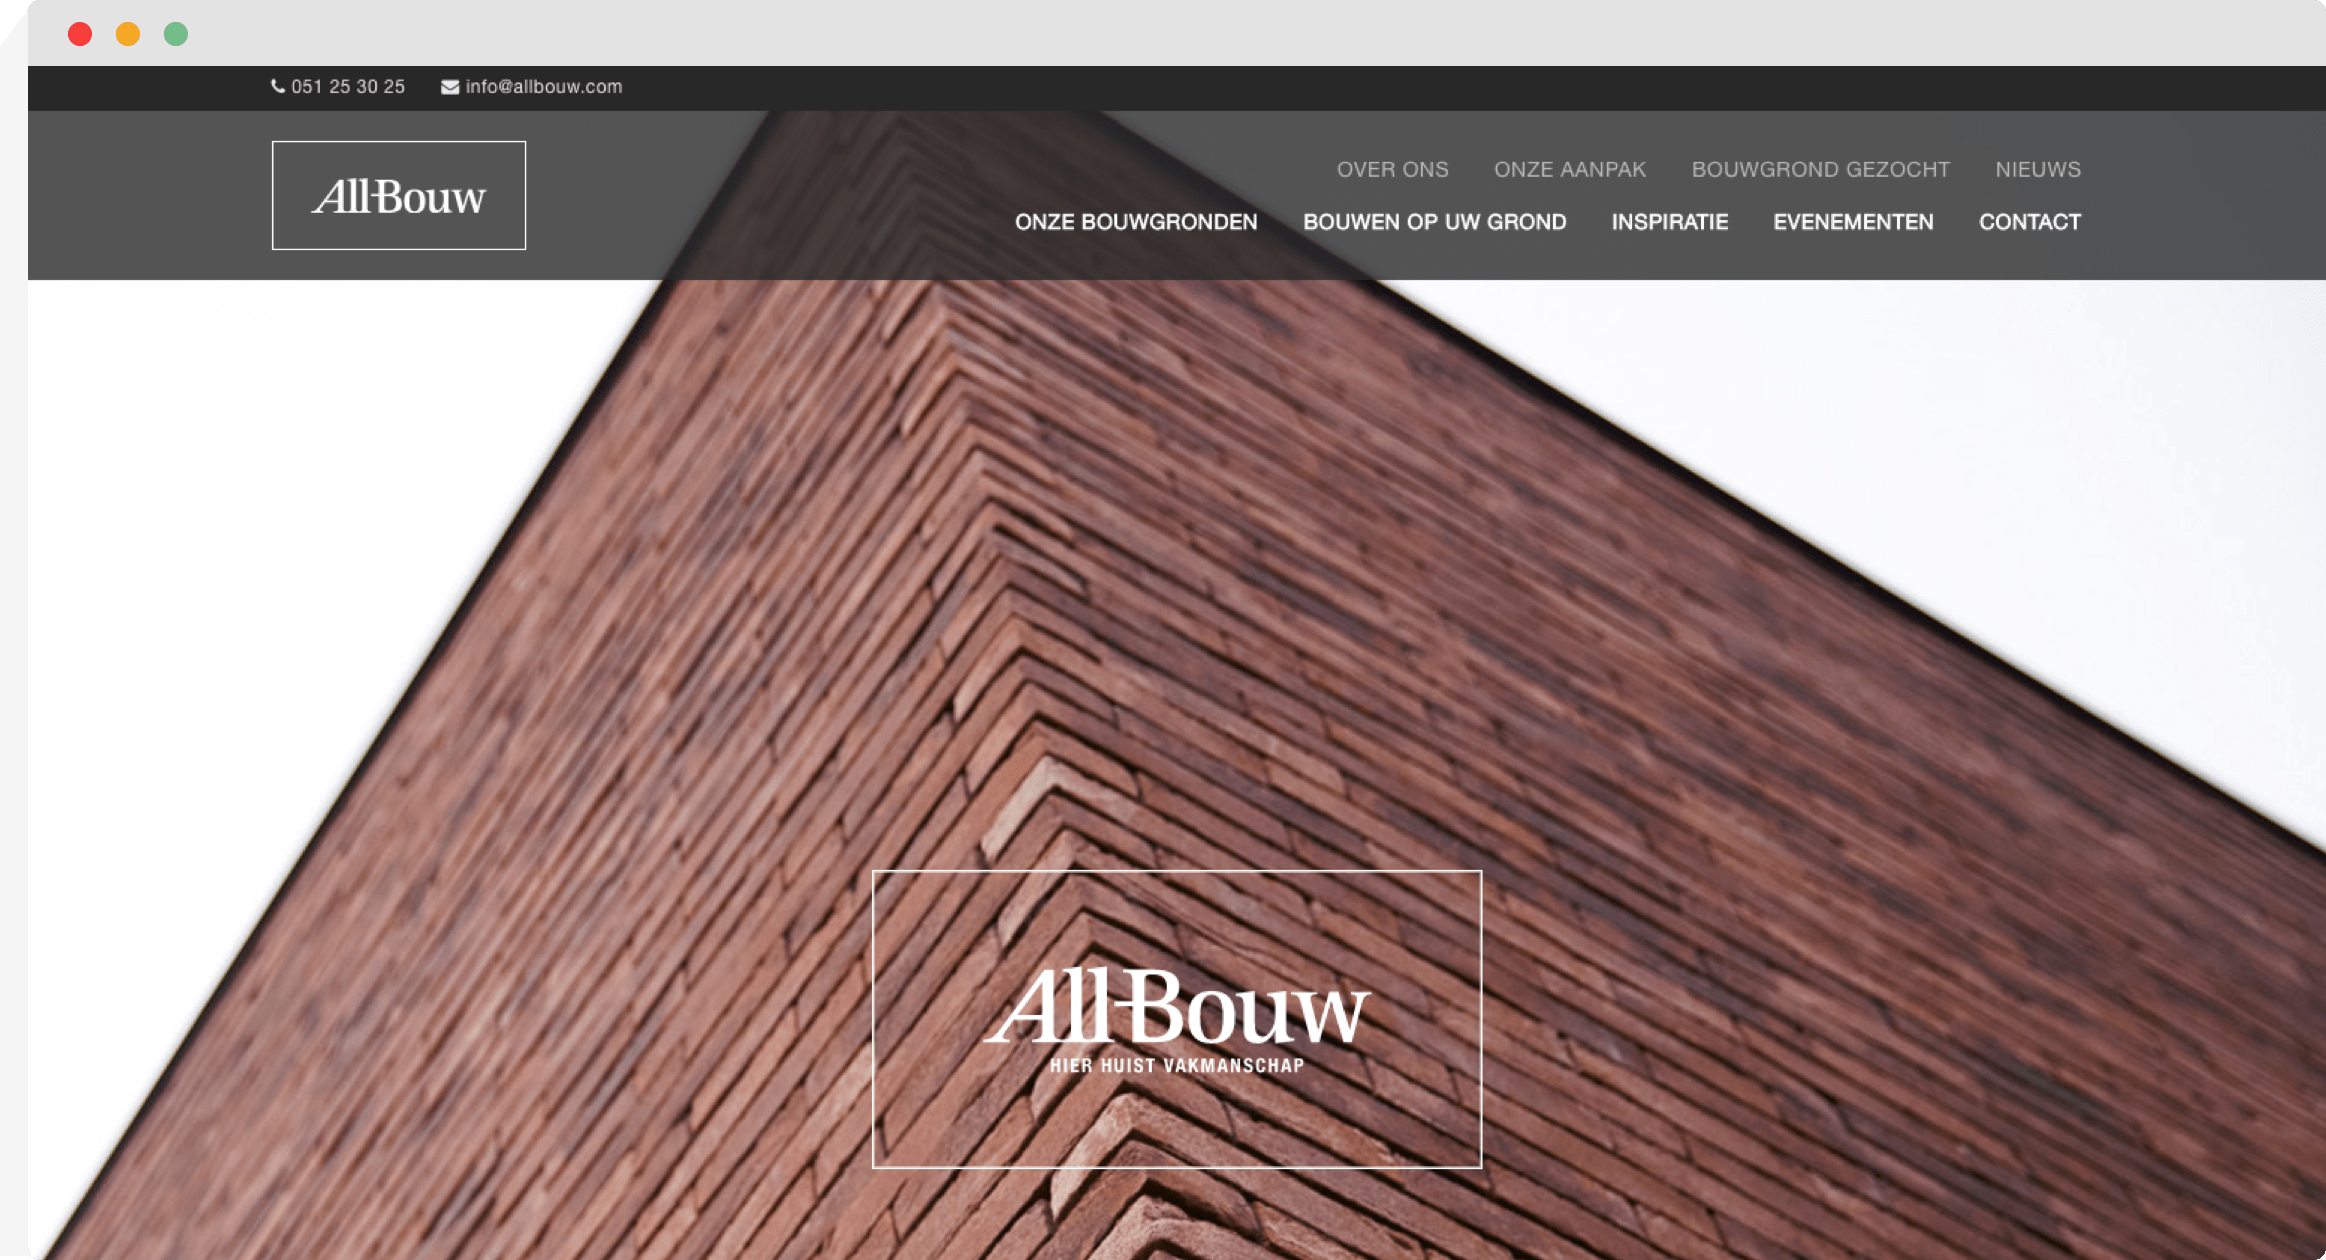 webdesign-allbouw-desktop.png